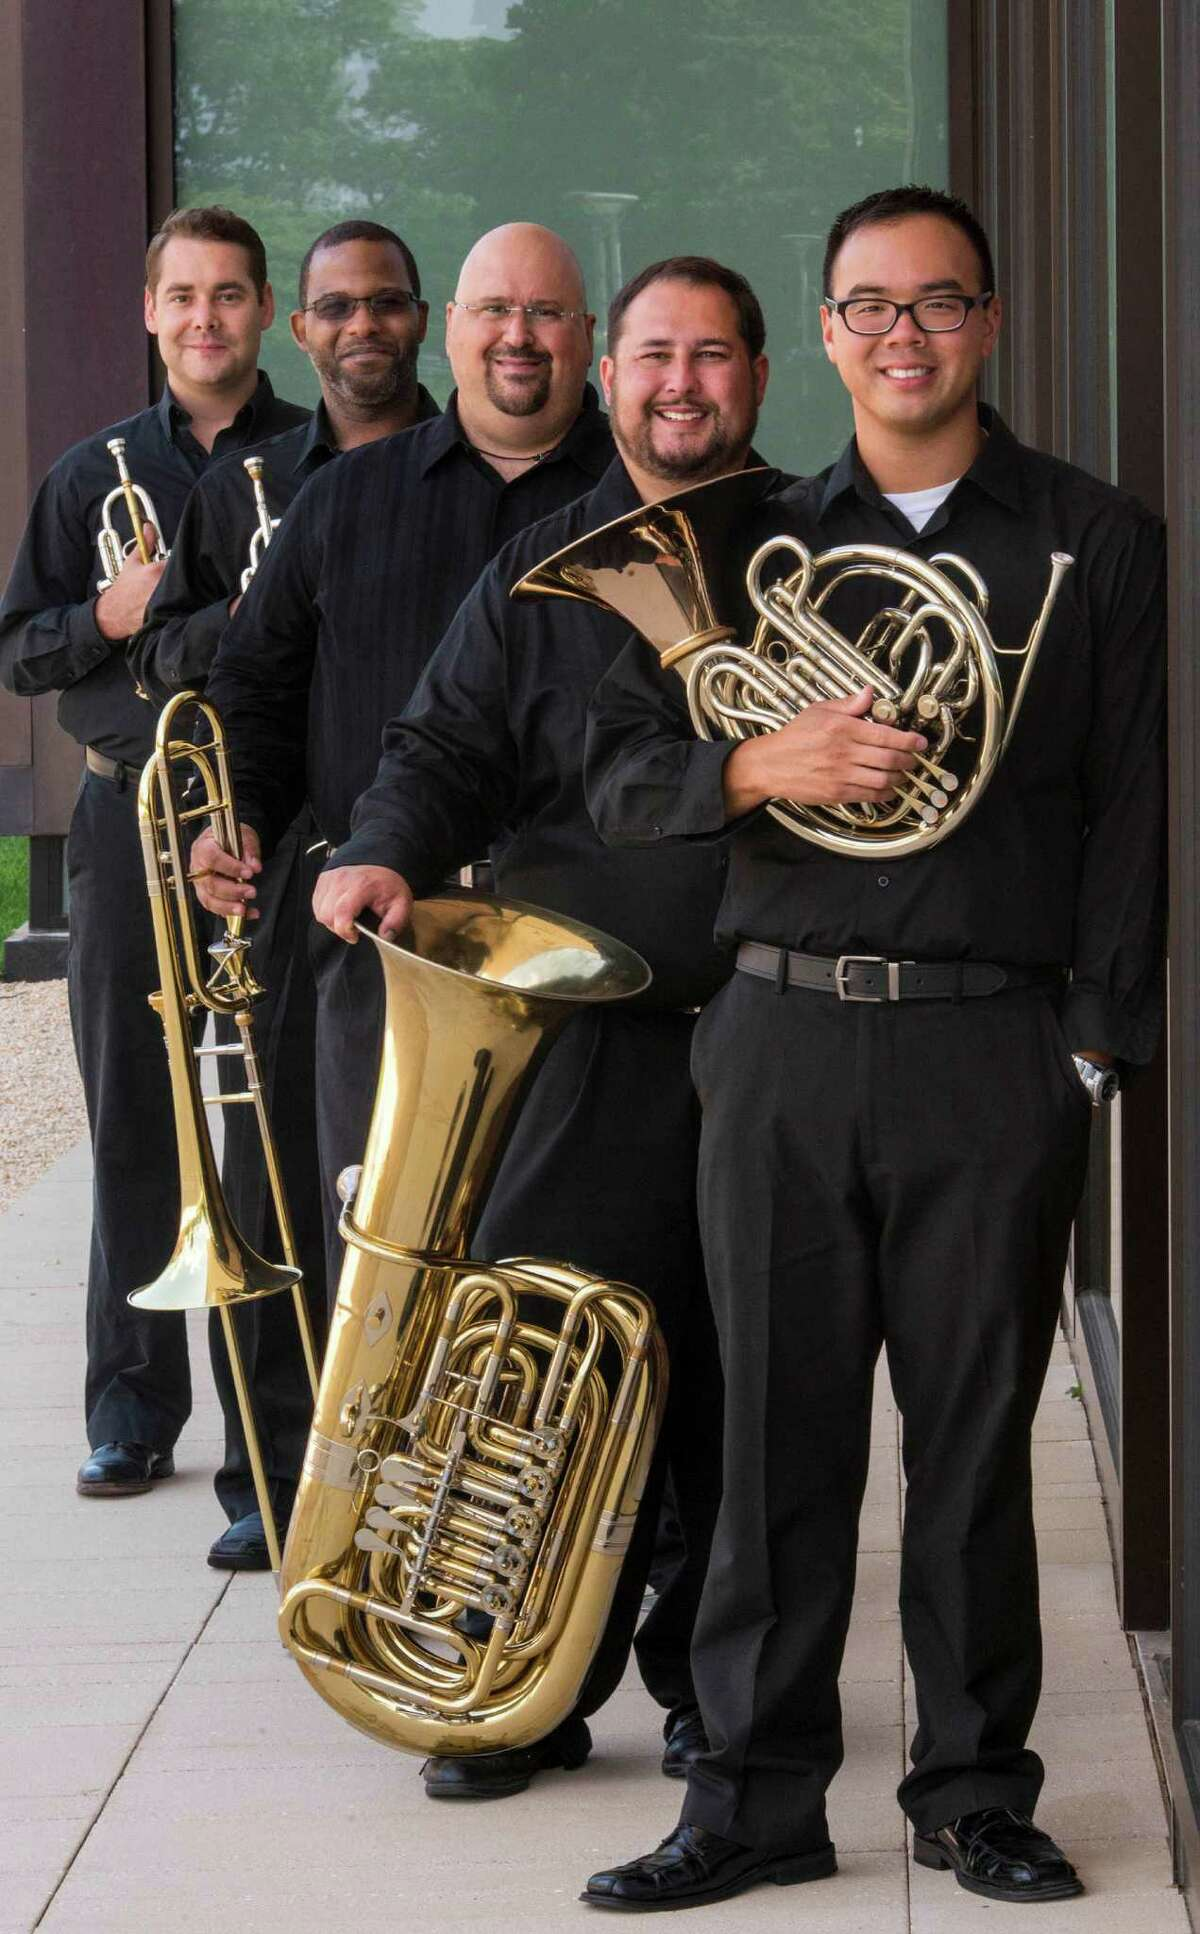 The SHU Faculty Brass Quintet will give it's debut public concert Friday, Nov. 15, 2013 on the Sacred Heart University campus in Fairfield, Conn. From left are Walker Beard, Damon Coachman, Keith Johnston, Jason Bouchard, Kevin Lam.